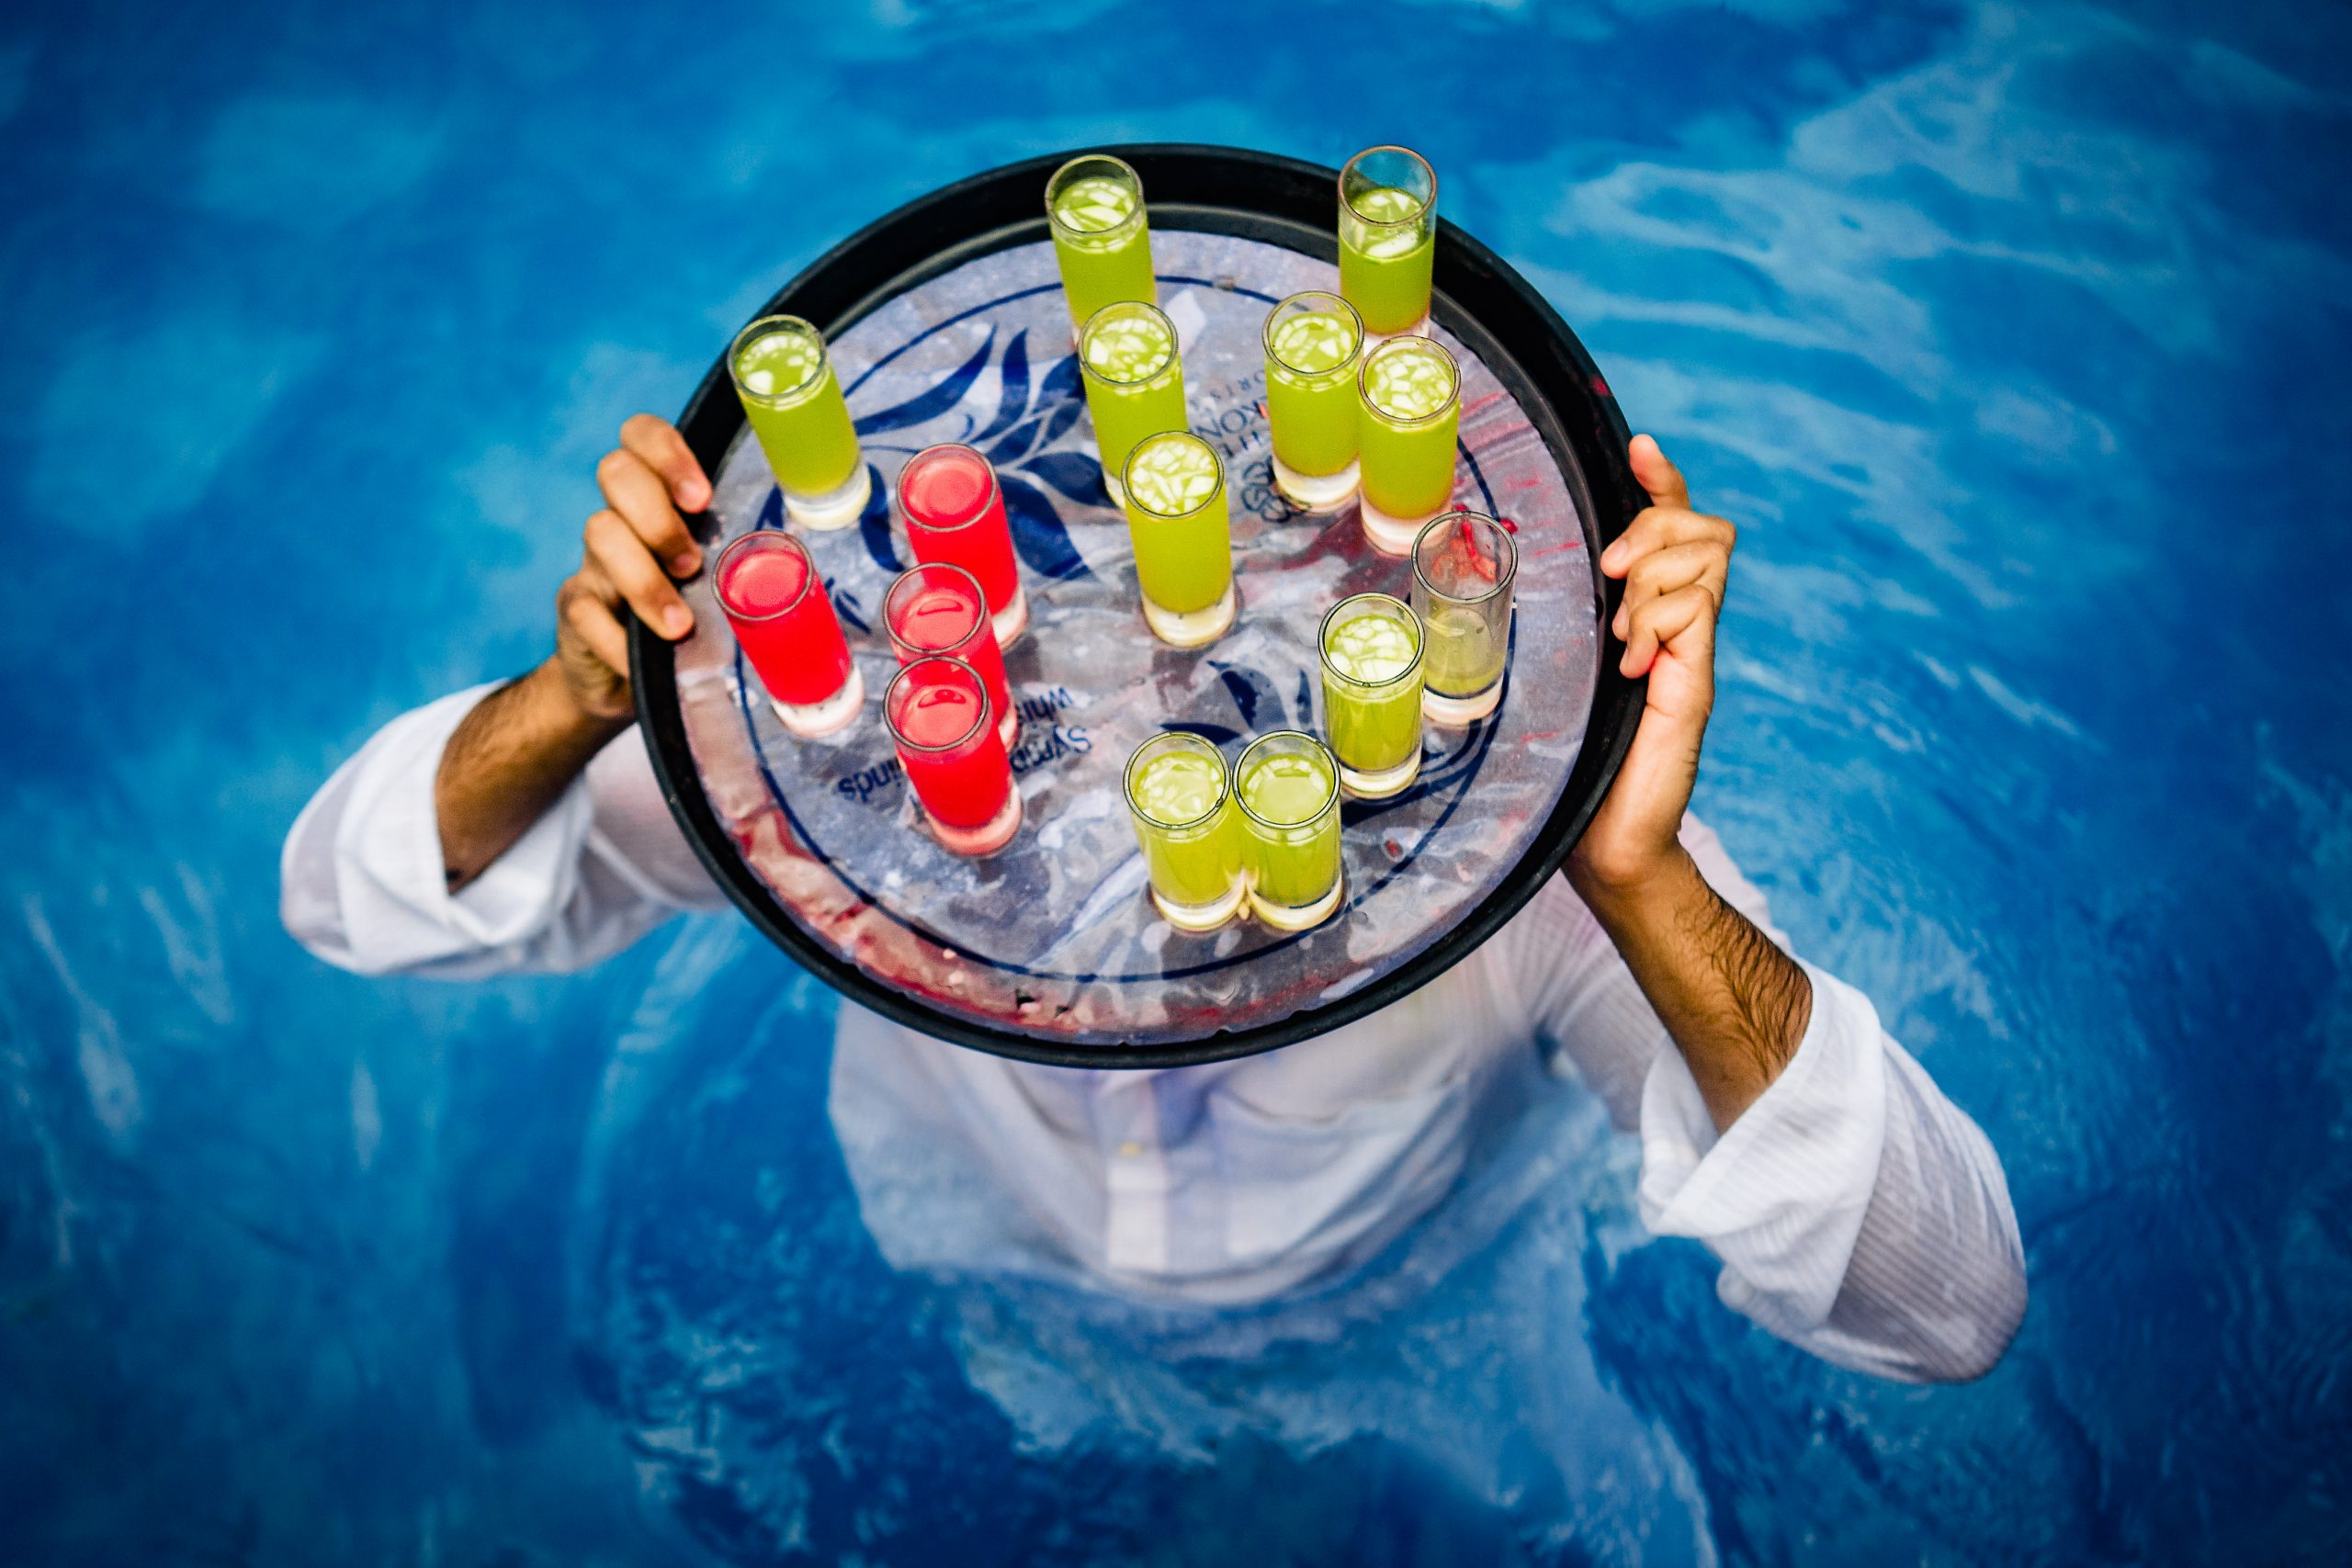 A man stands in a pool with a tray of drinks on his head